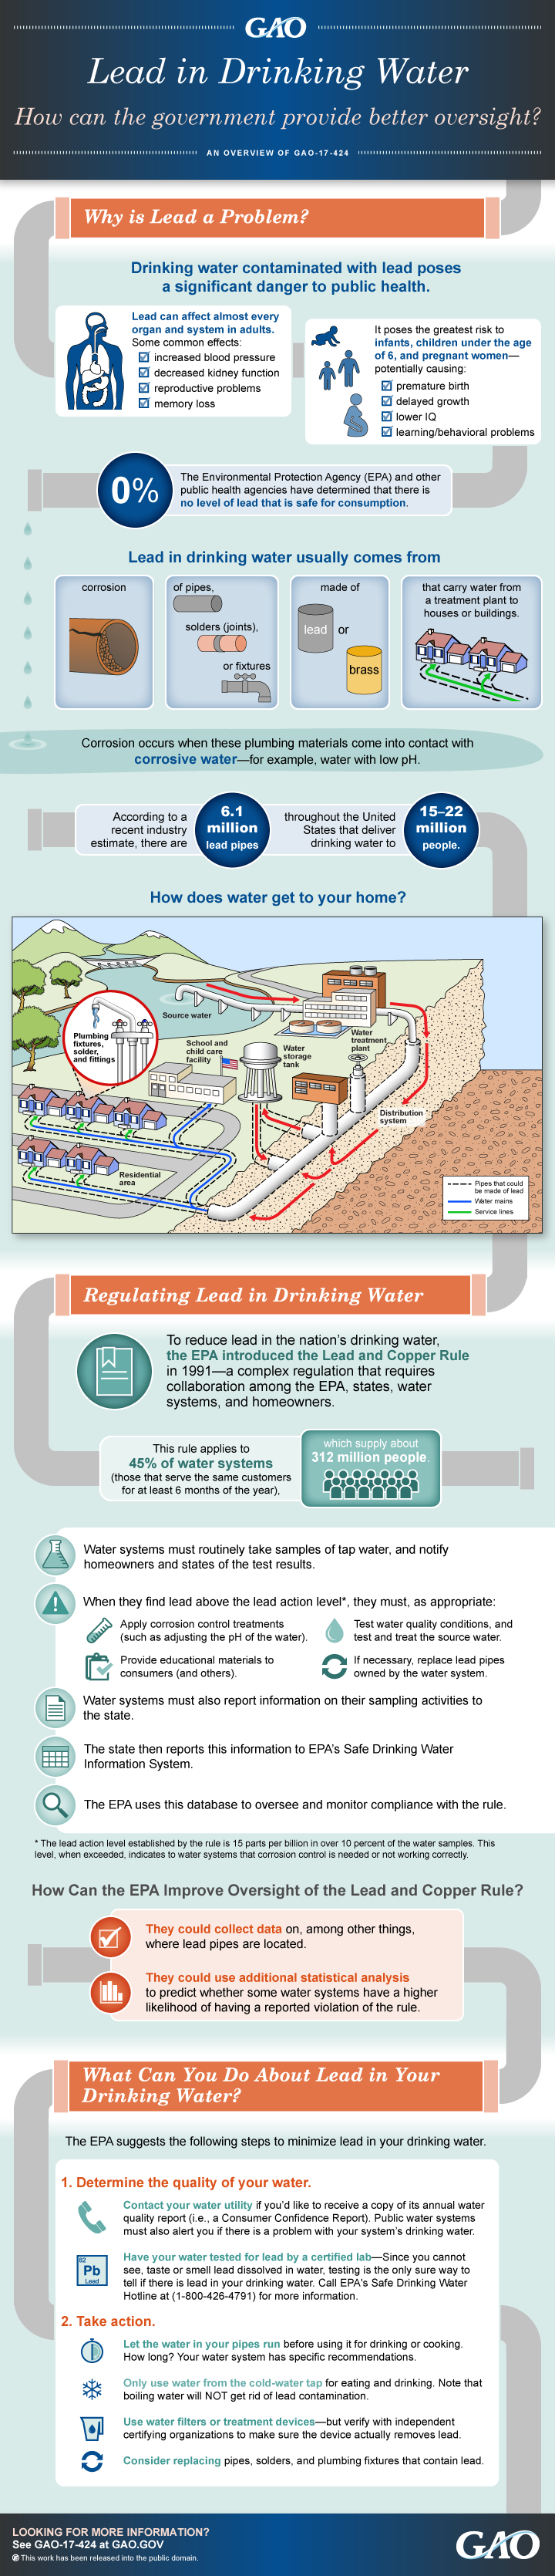 INFOGRAPHIC: Lead in Drinking Water